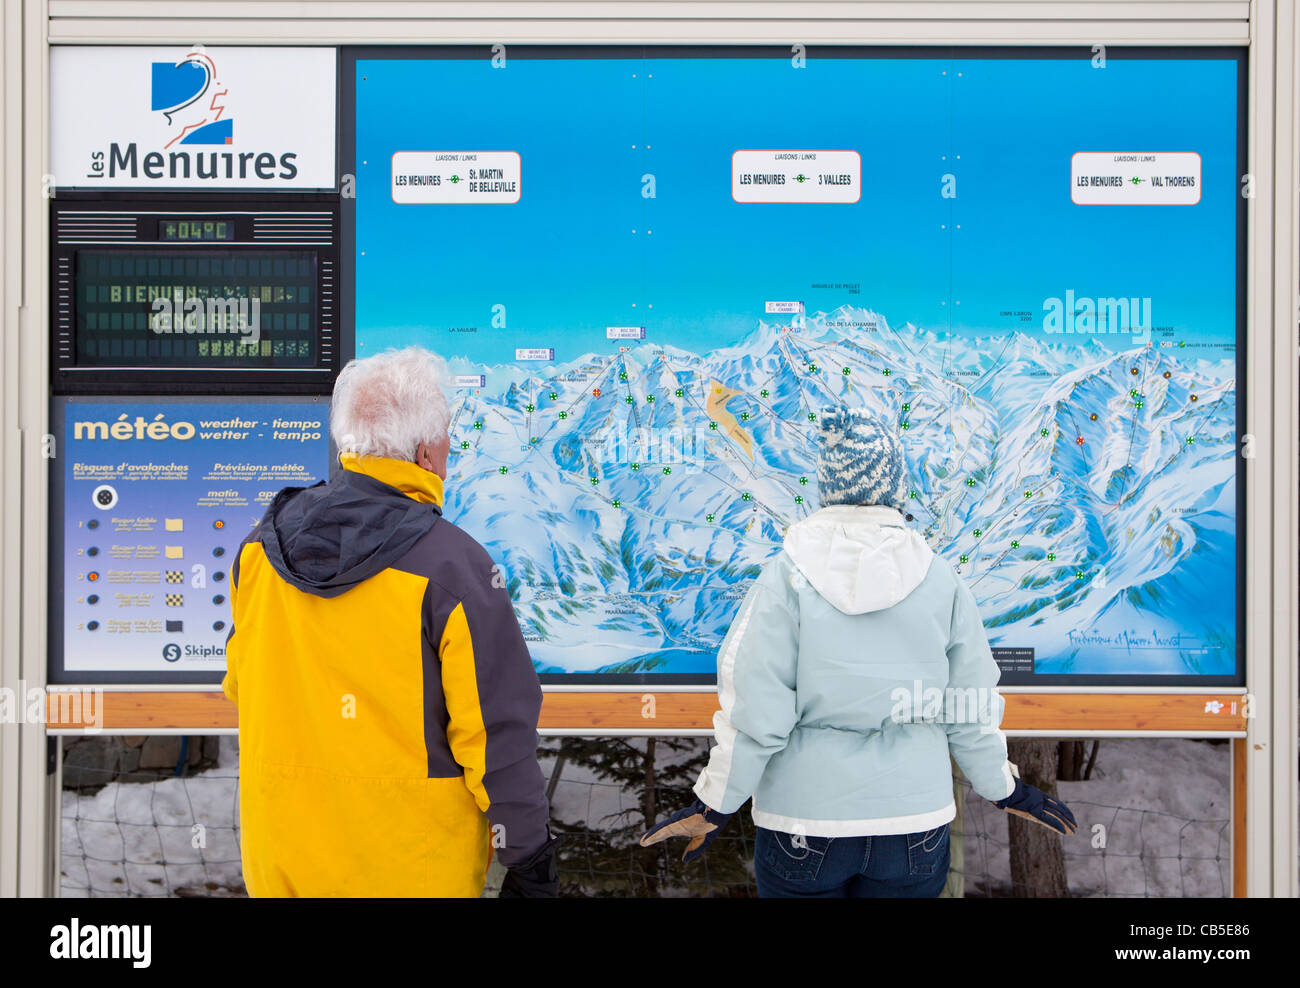 Trois Vallees illuminated piste map, Les Menuires, Savoie, France. - Stock Image